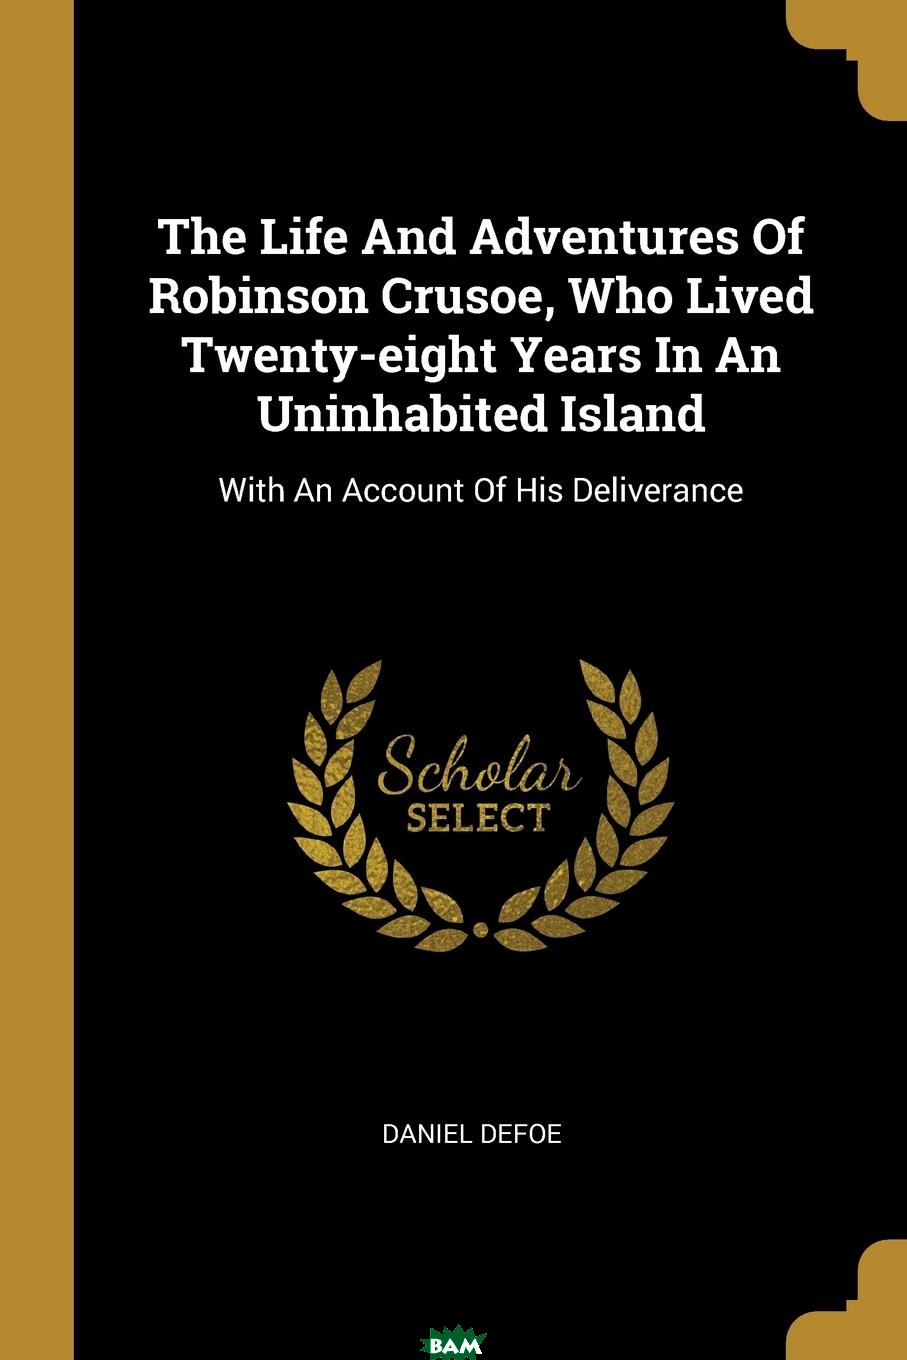 Купить The Life And Adventures Of Robinson Crusoe, Who Lived Twenty-eight Years In An Uninhabited Island. With An Account Of His Deliverance, Daniel Defoe, 9781011151233